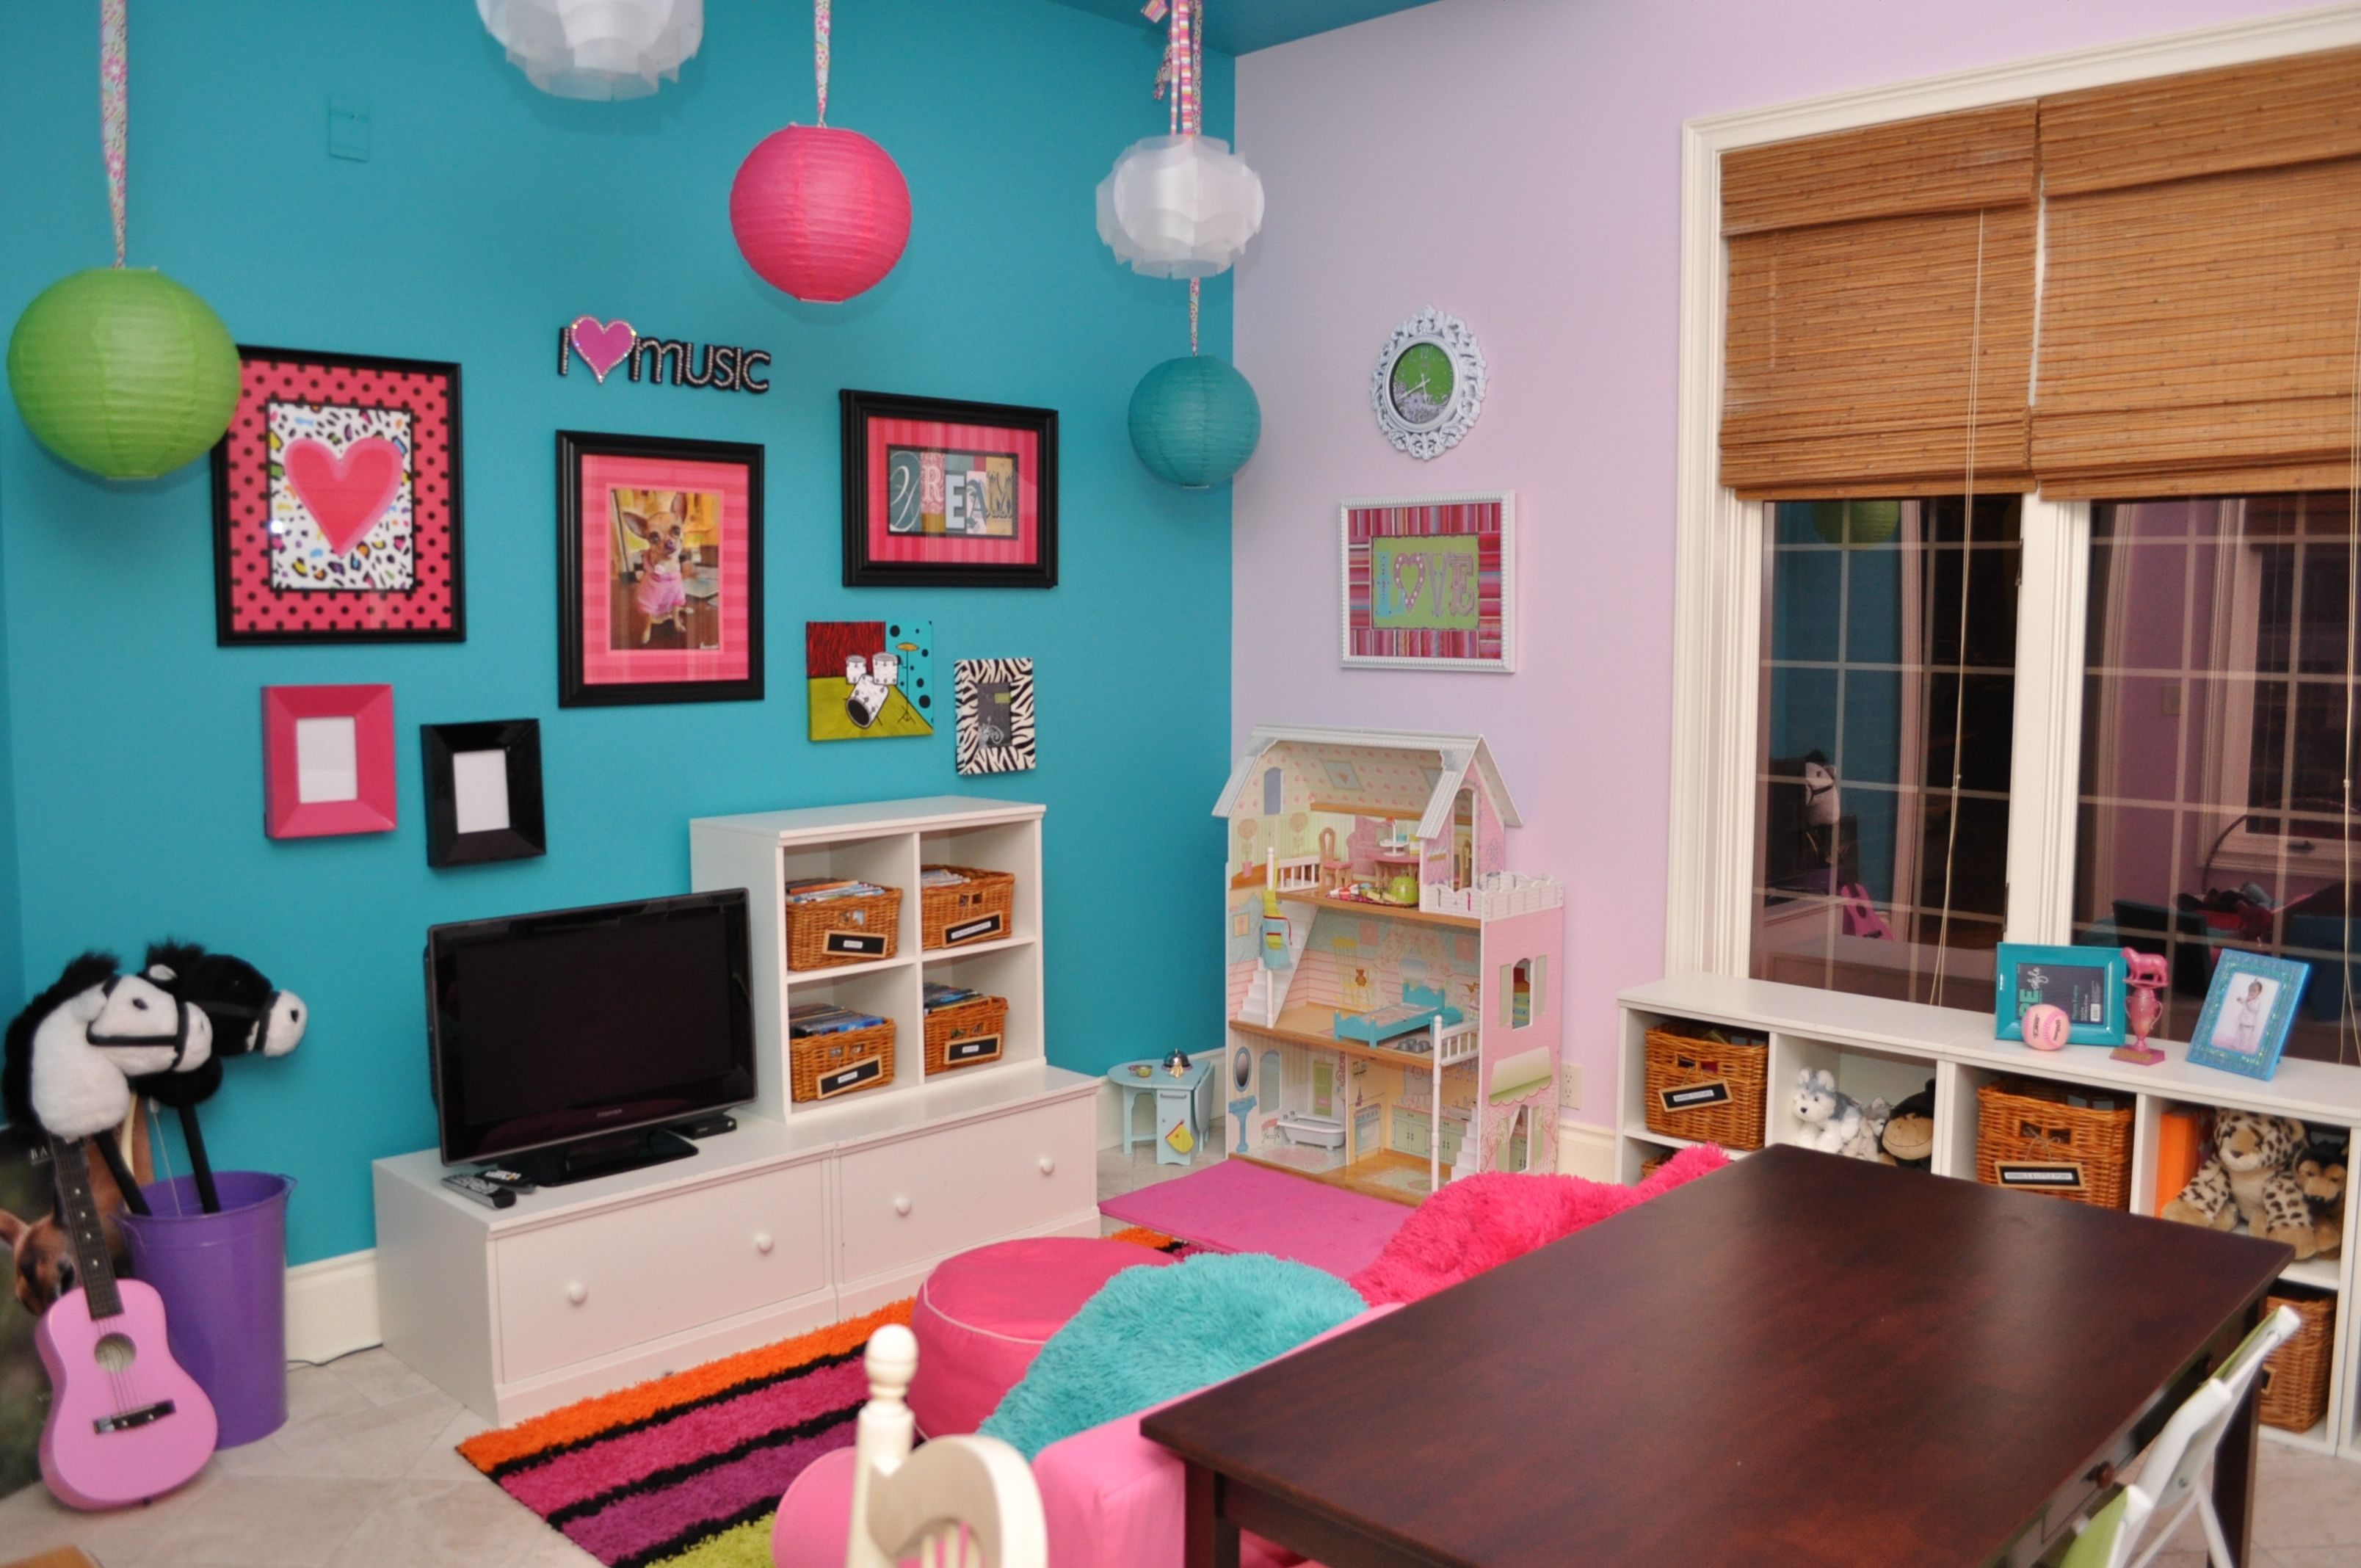 Wall Decoration Ideas For Playrooms Google Search Playroom Paint Kids Playroom Furniture Kids Room Paint